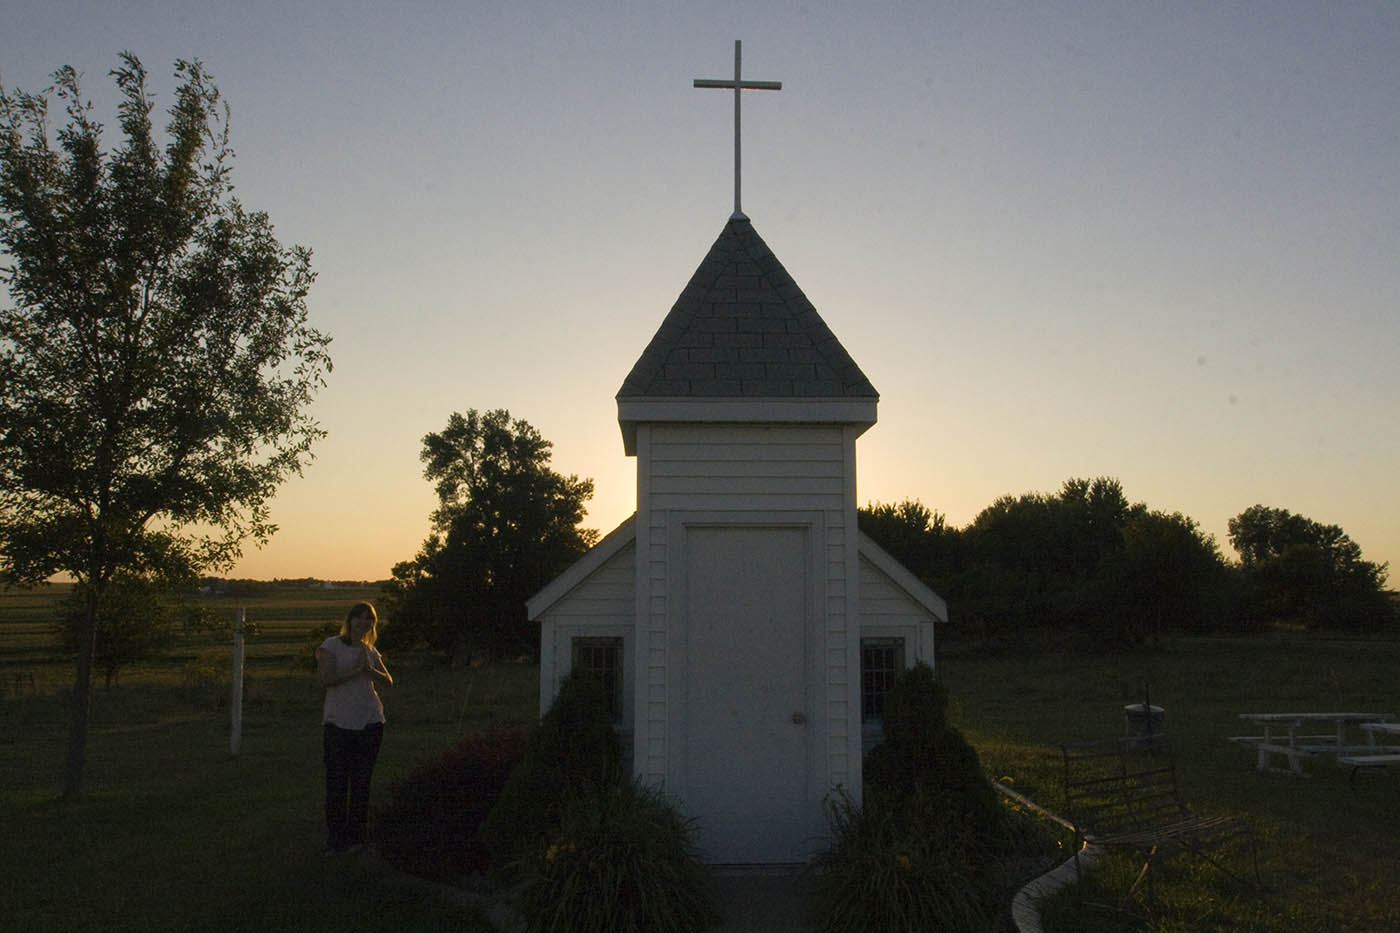 Blue Mound Wayside Chapel - Tiny Church in Luverne, Minnesota